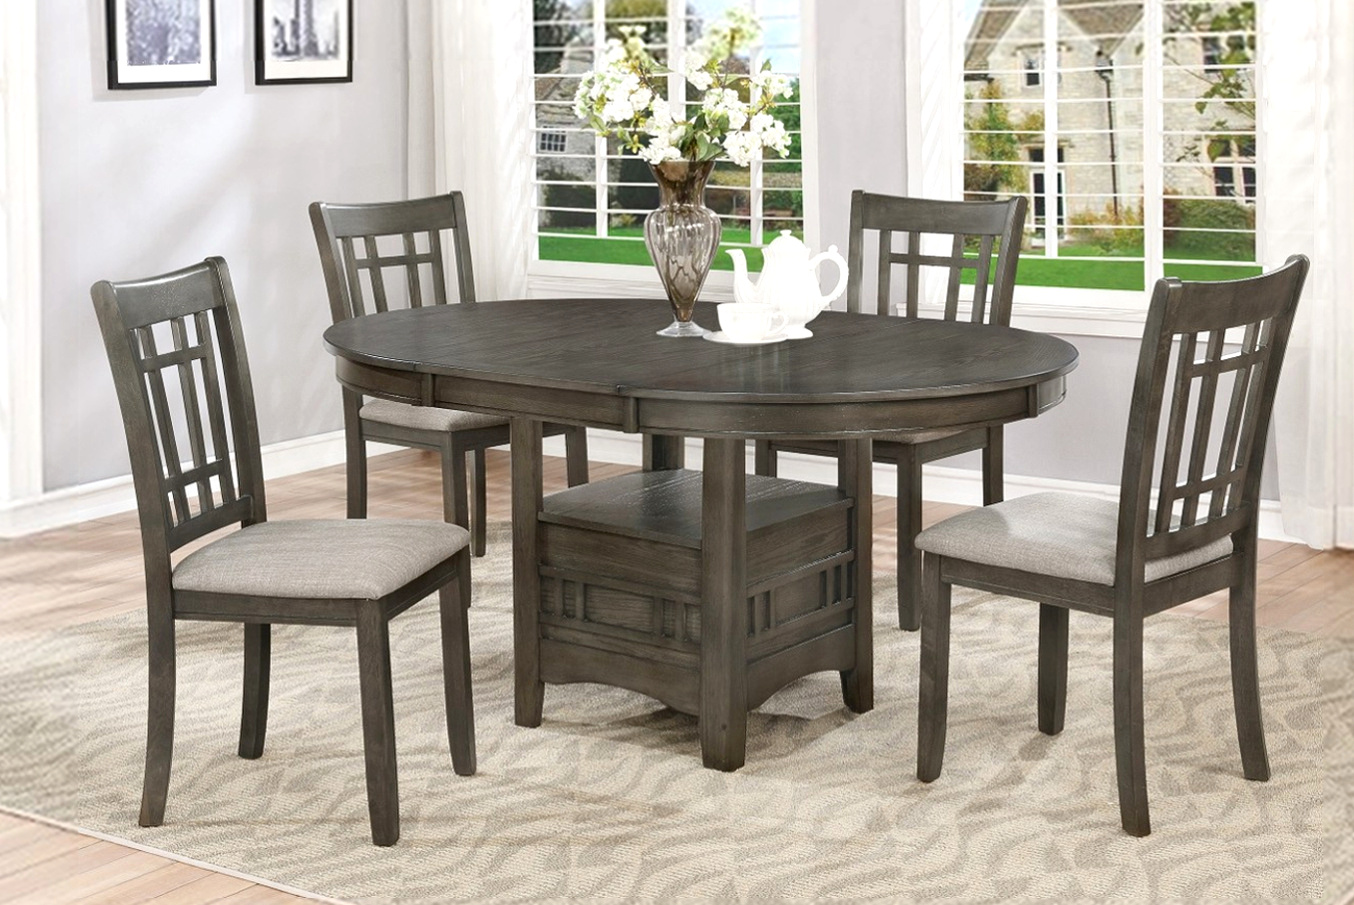 2195GY Dining Set